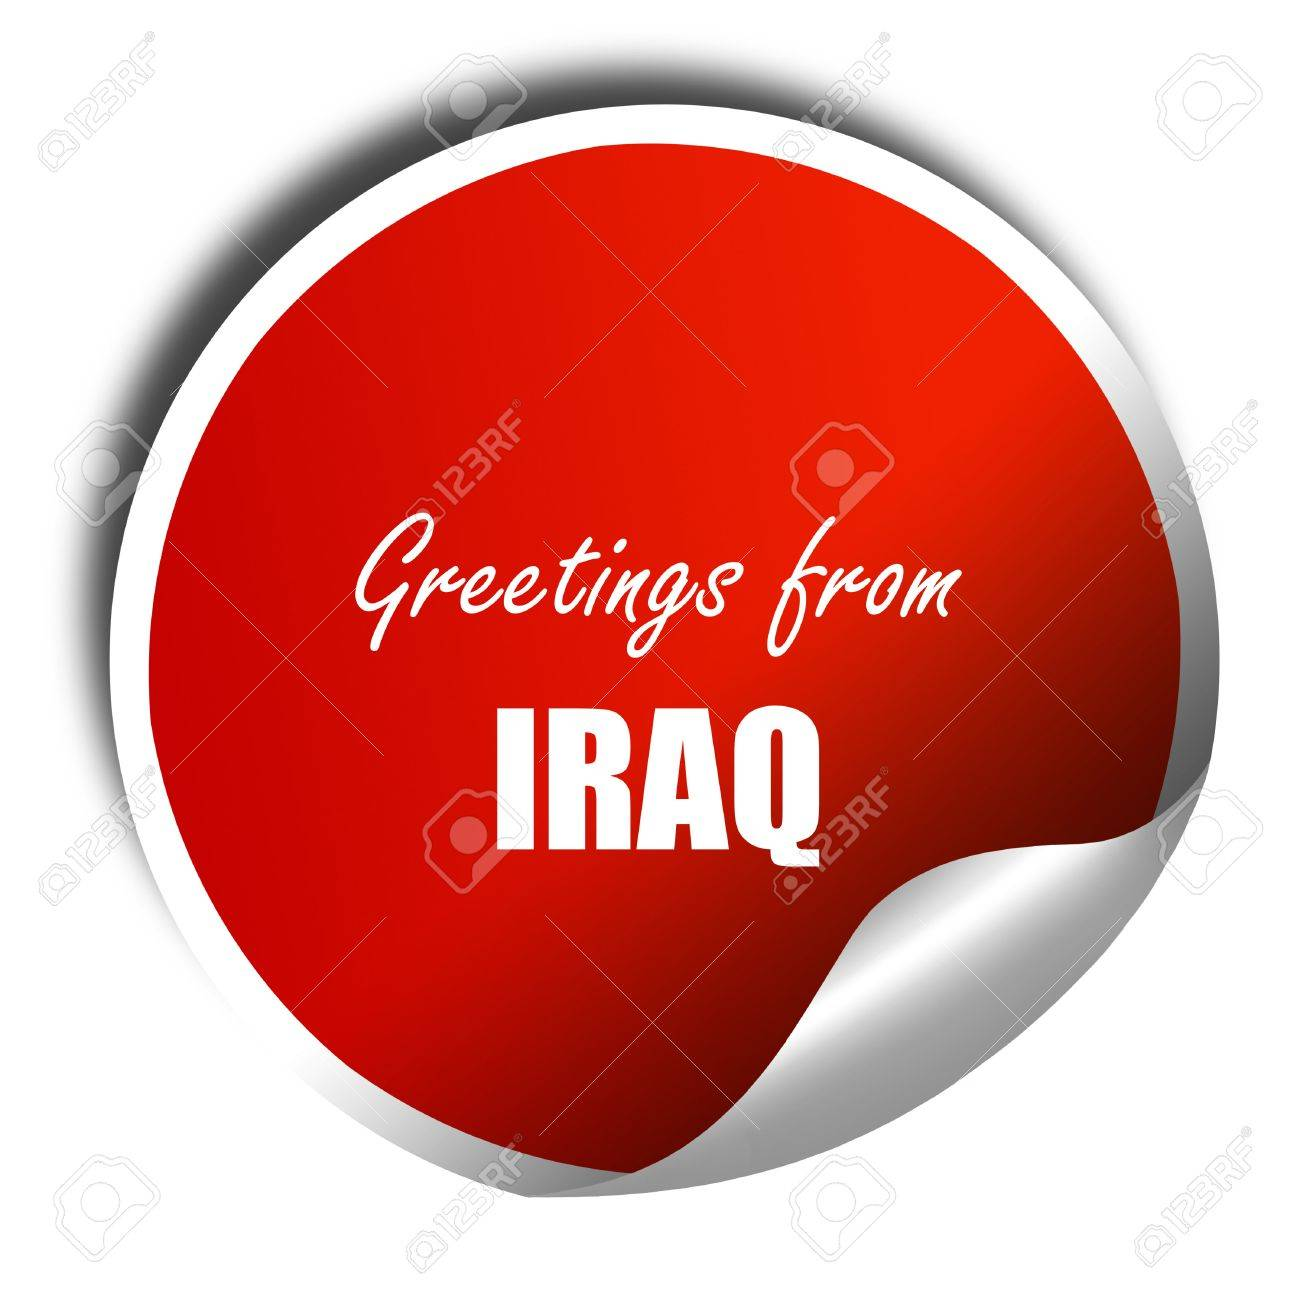 Greetings from iraq card with some soft highlights 3d rendering greetings from iraq card with some soft highlights 3d rendering red sticker with white kristyandbryce Gallery